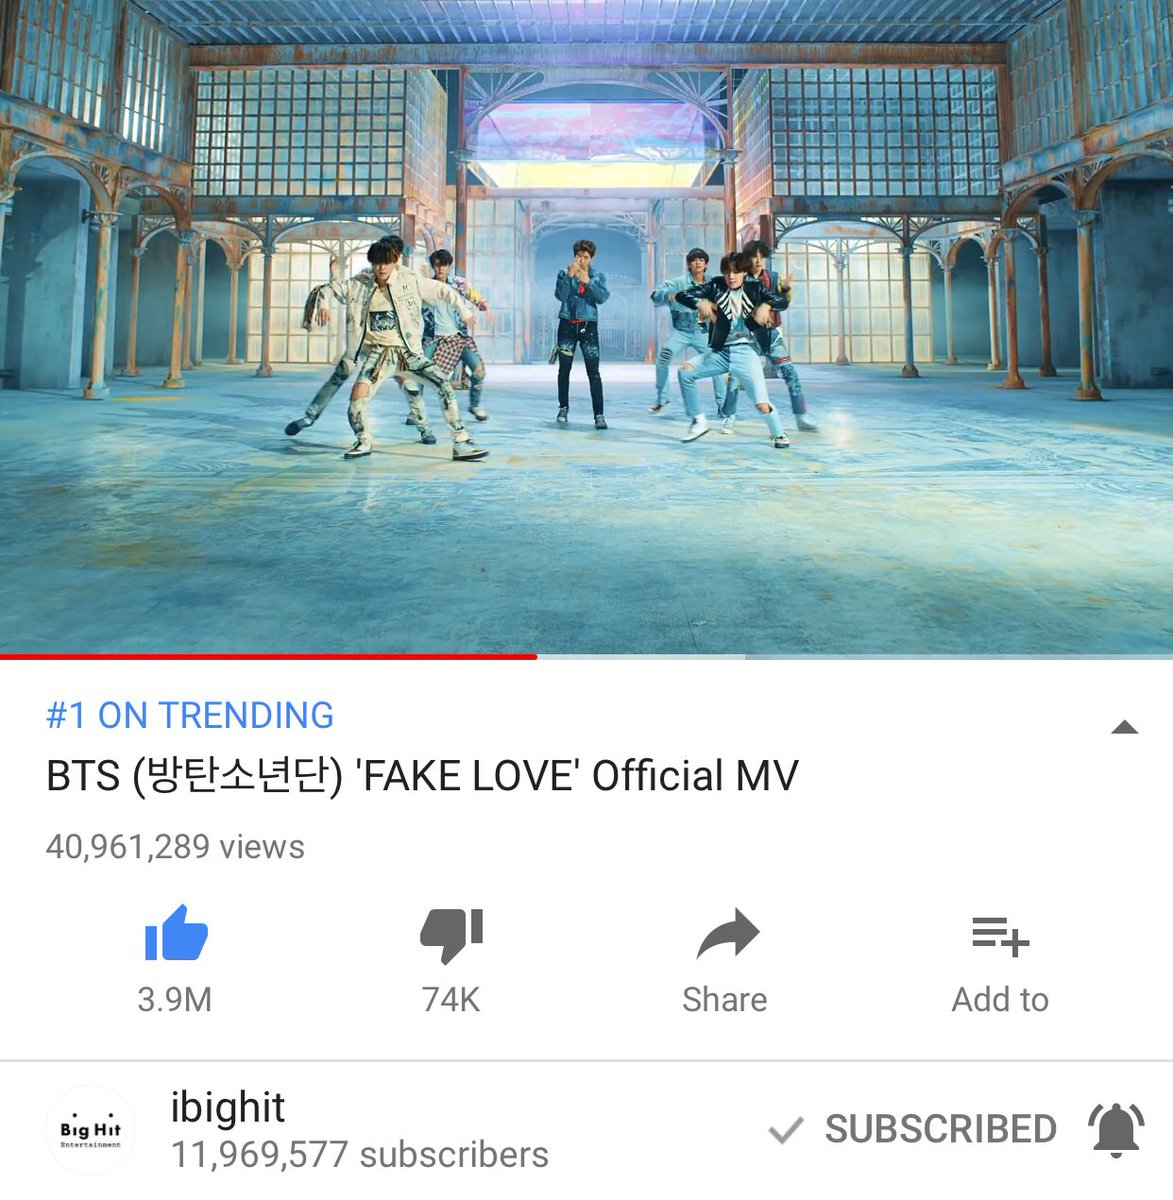 Fake Love, BTS, Music Video | Baaz